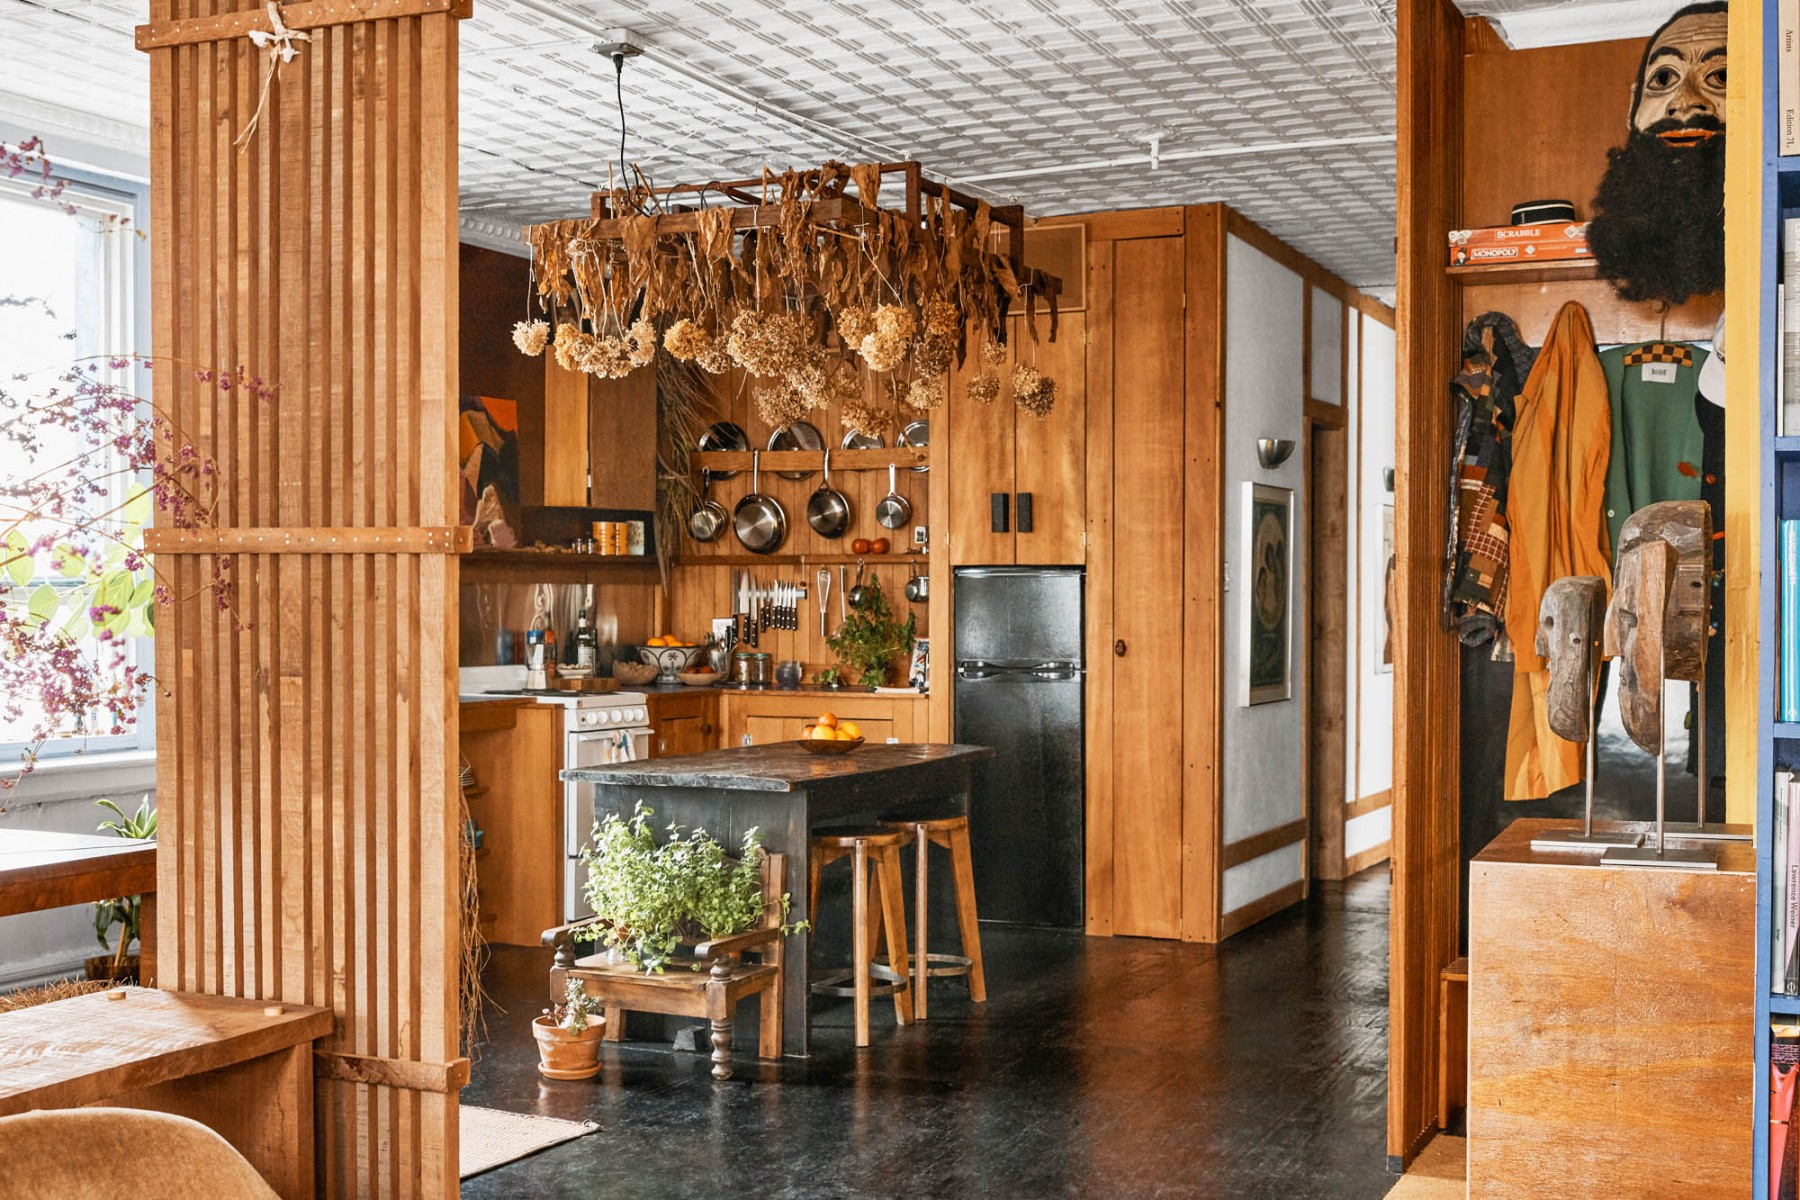 Cabin aesthetics in Downtown Manhattan - Green River Project